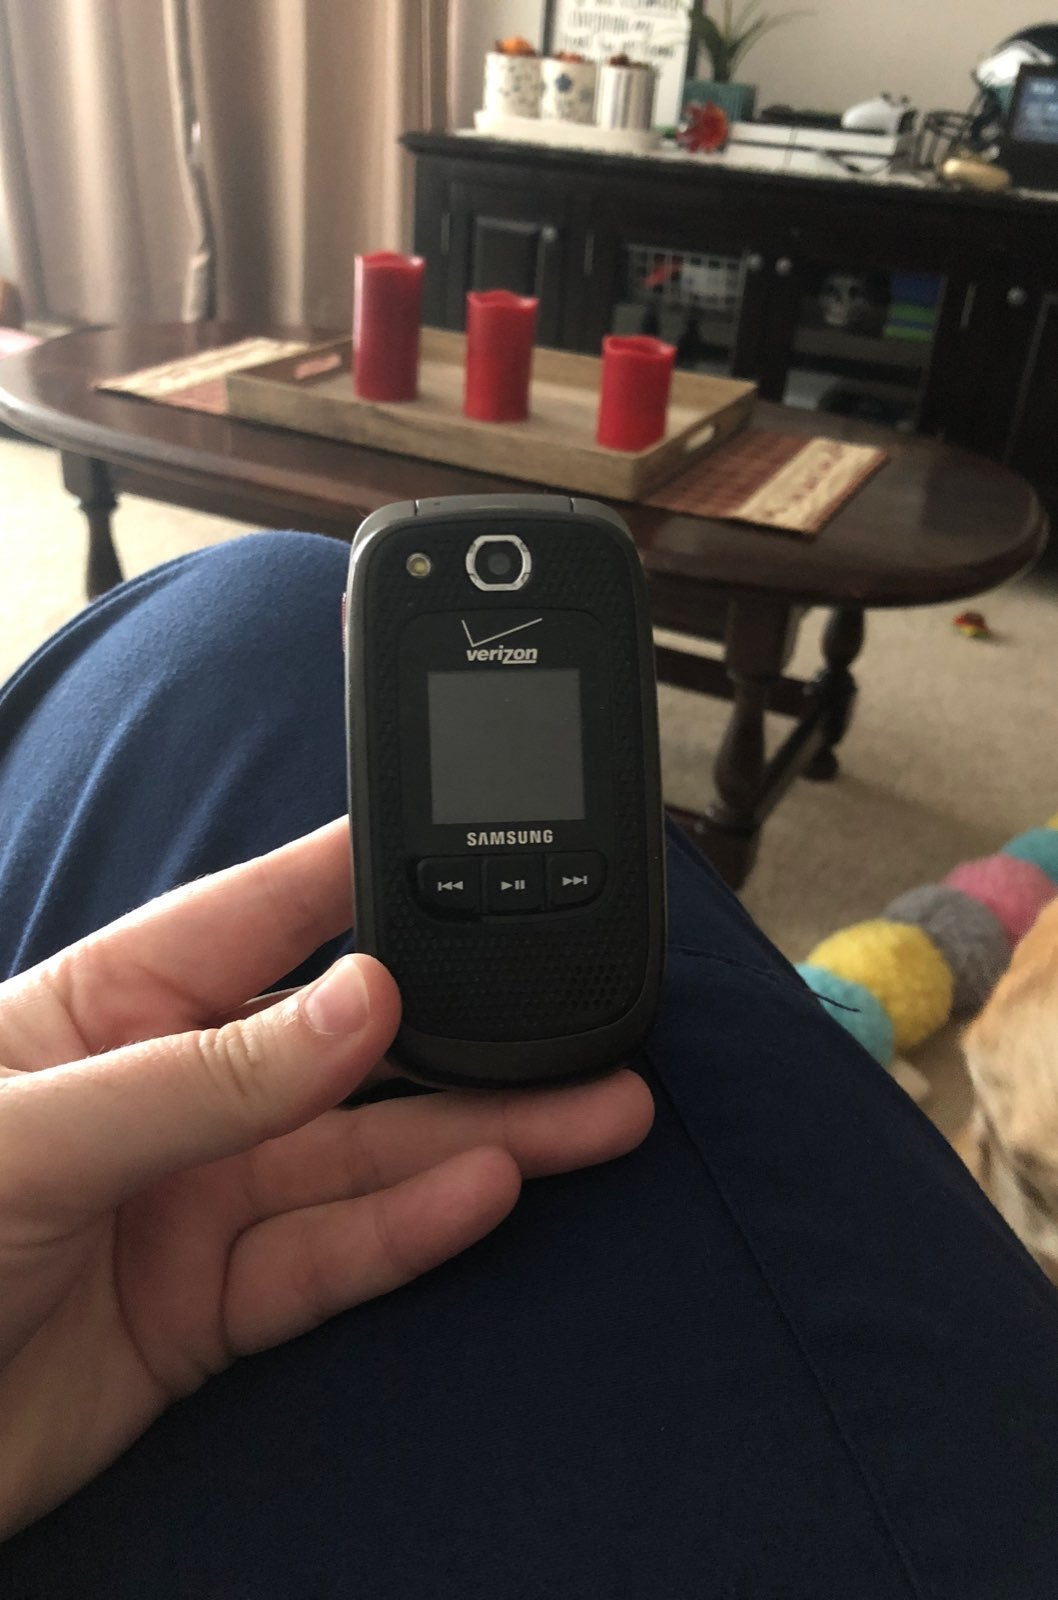 Verizon Samsung Flip Phone